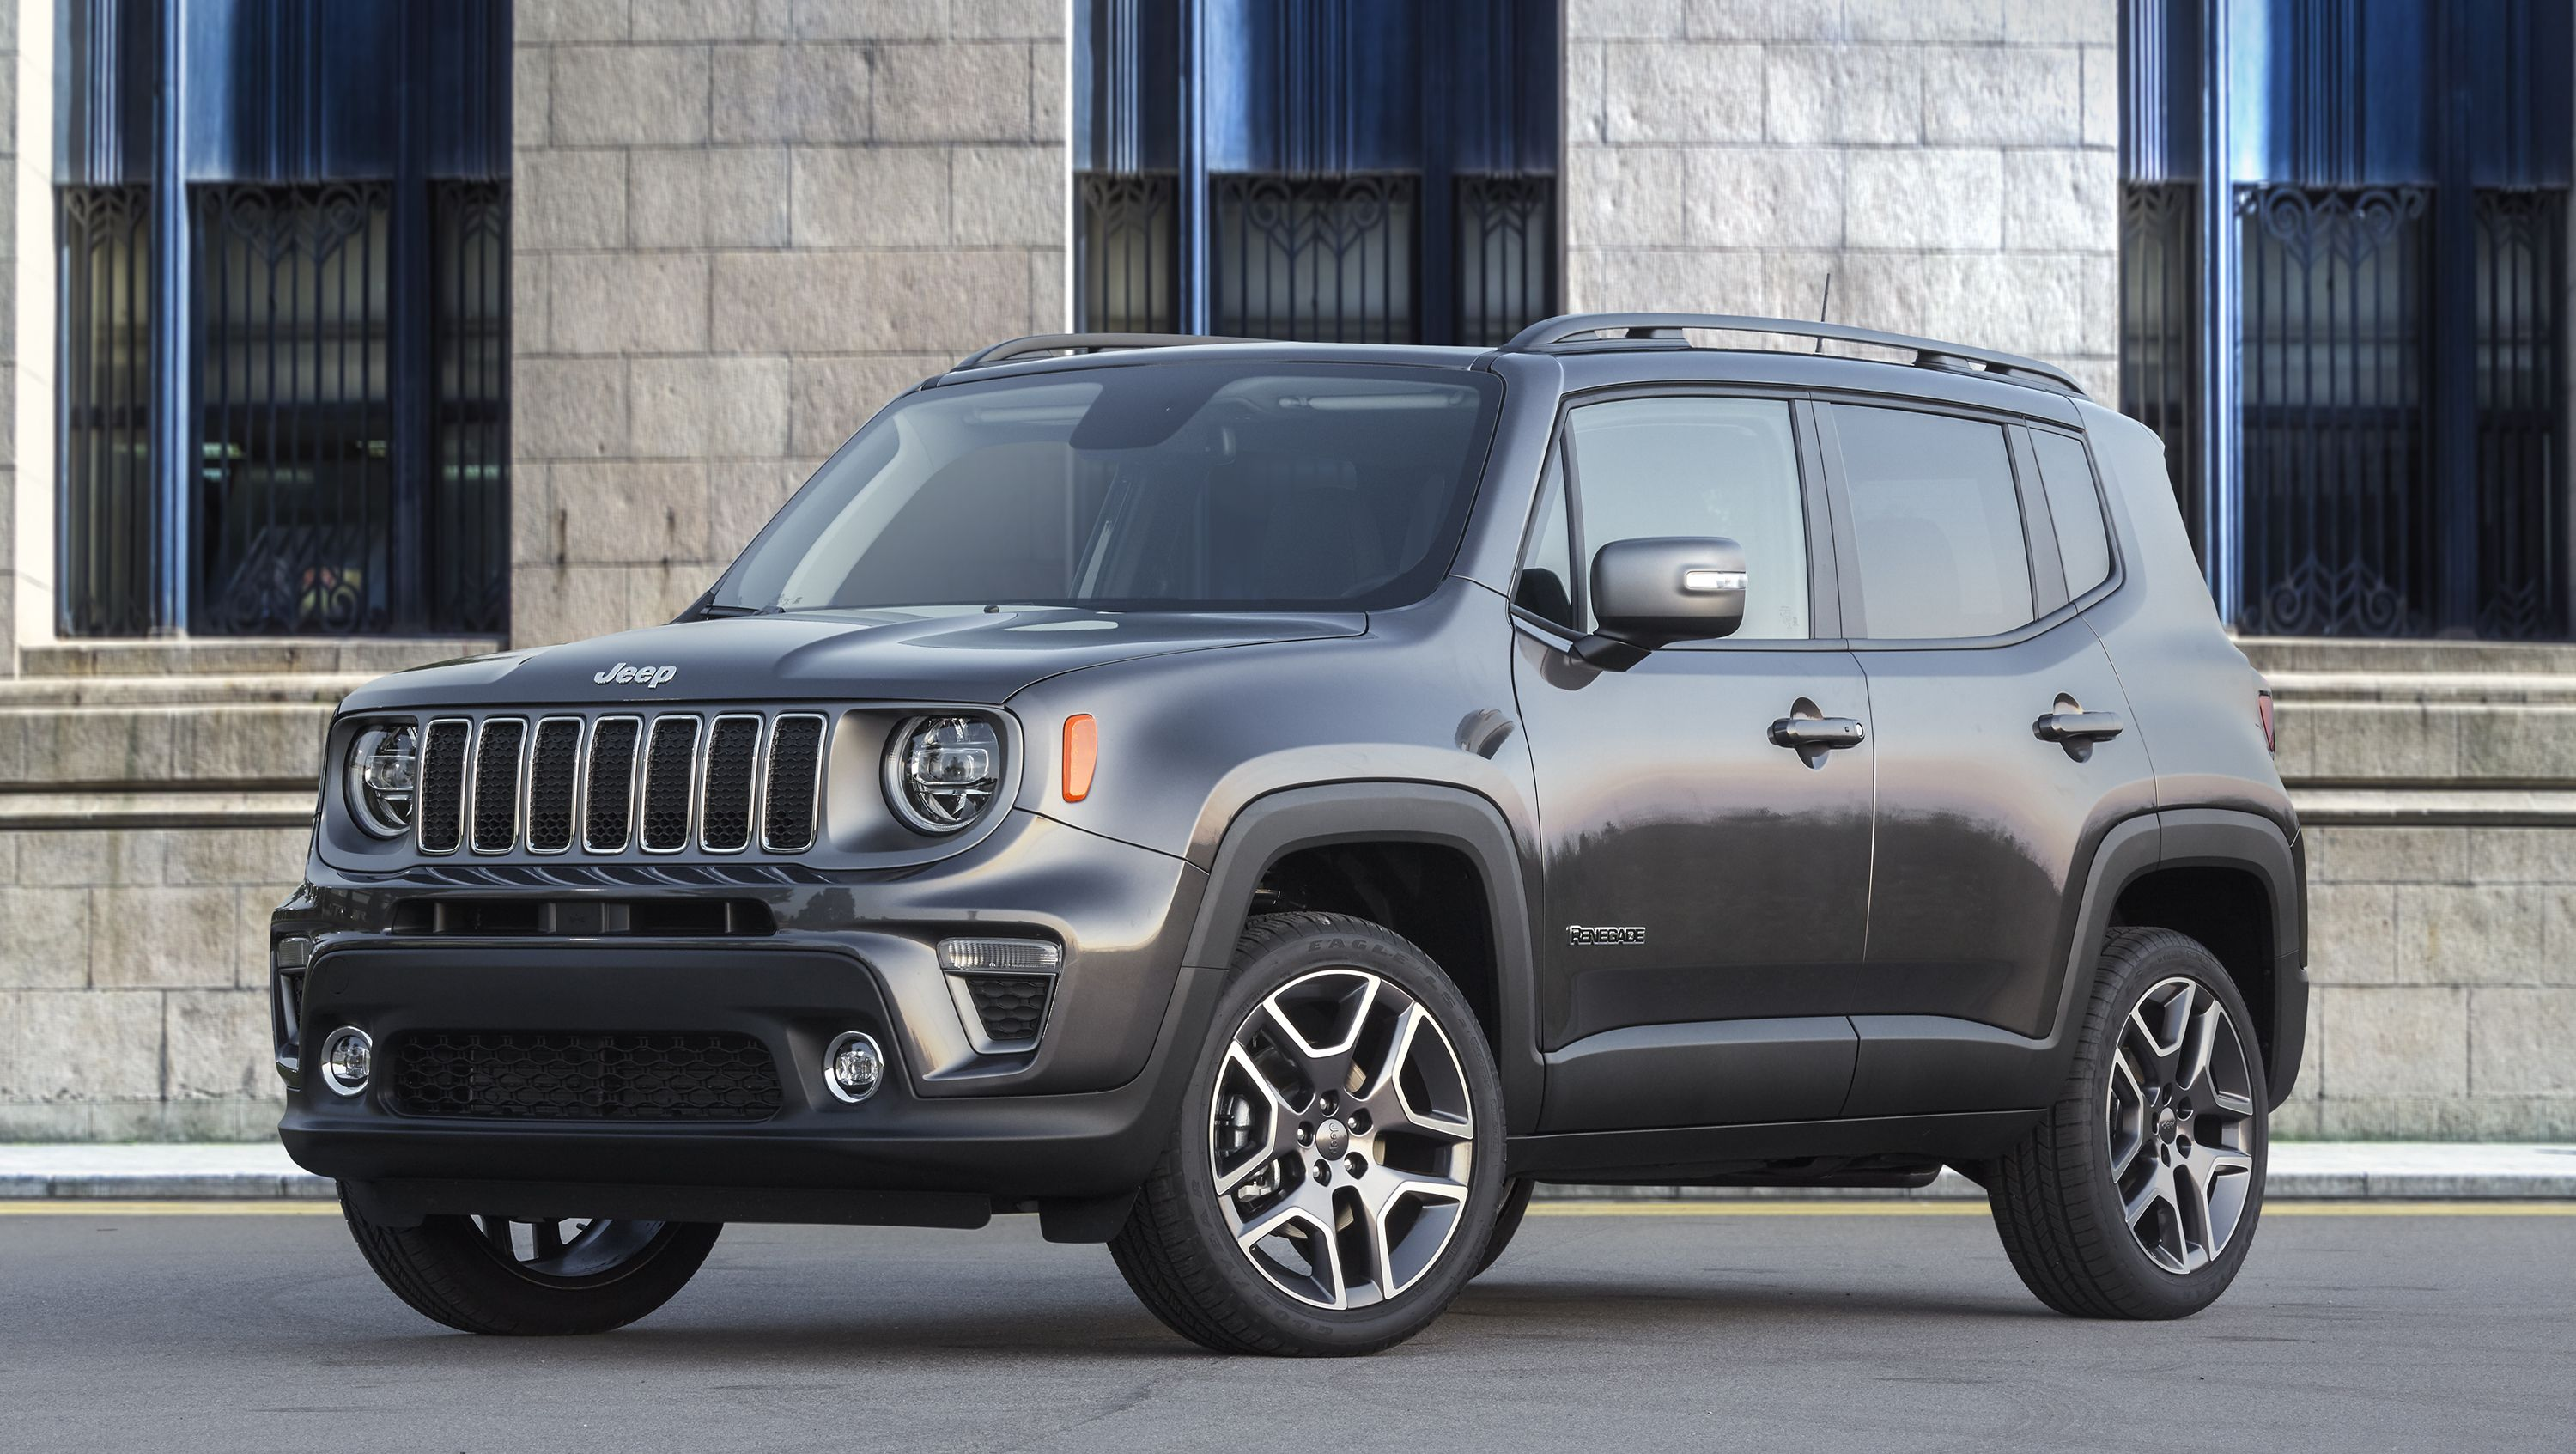 Good Jeep Names >> The 17 Best New Subcompact Crossover Suvs Of 2019 Small Suvs Ranked